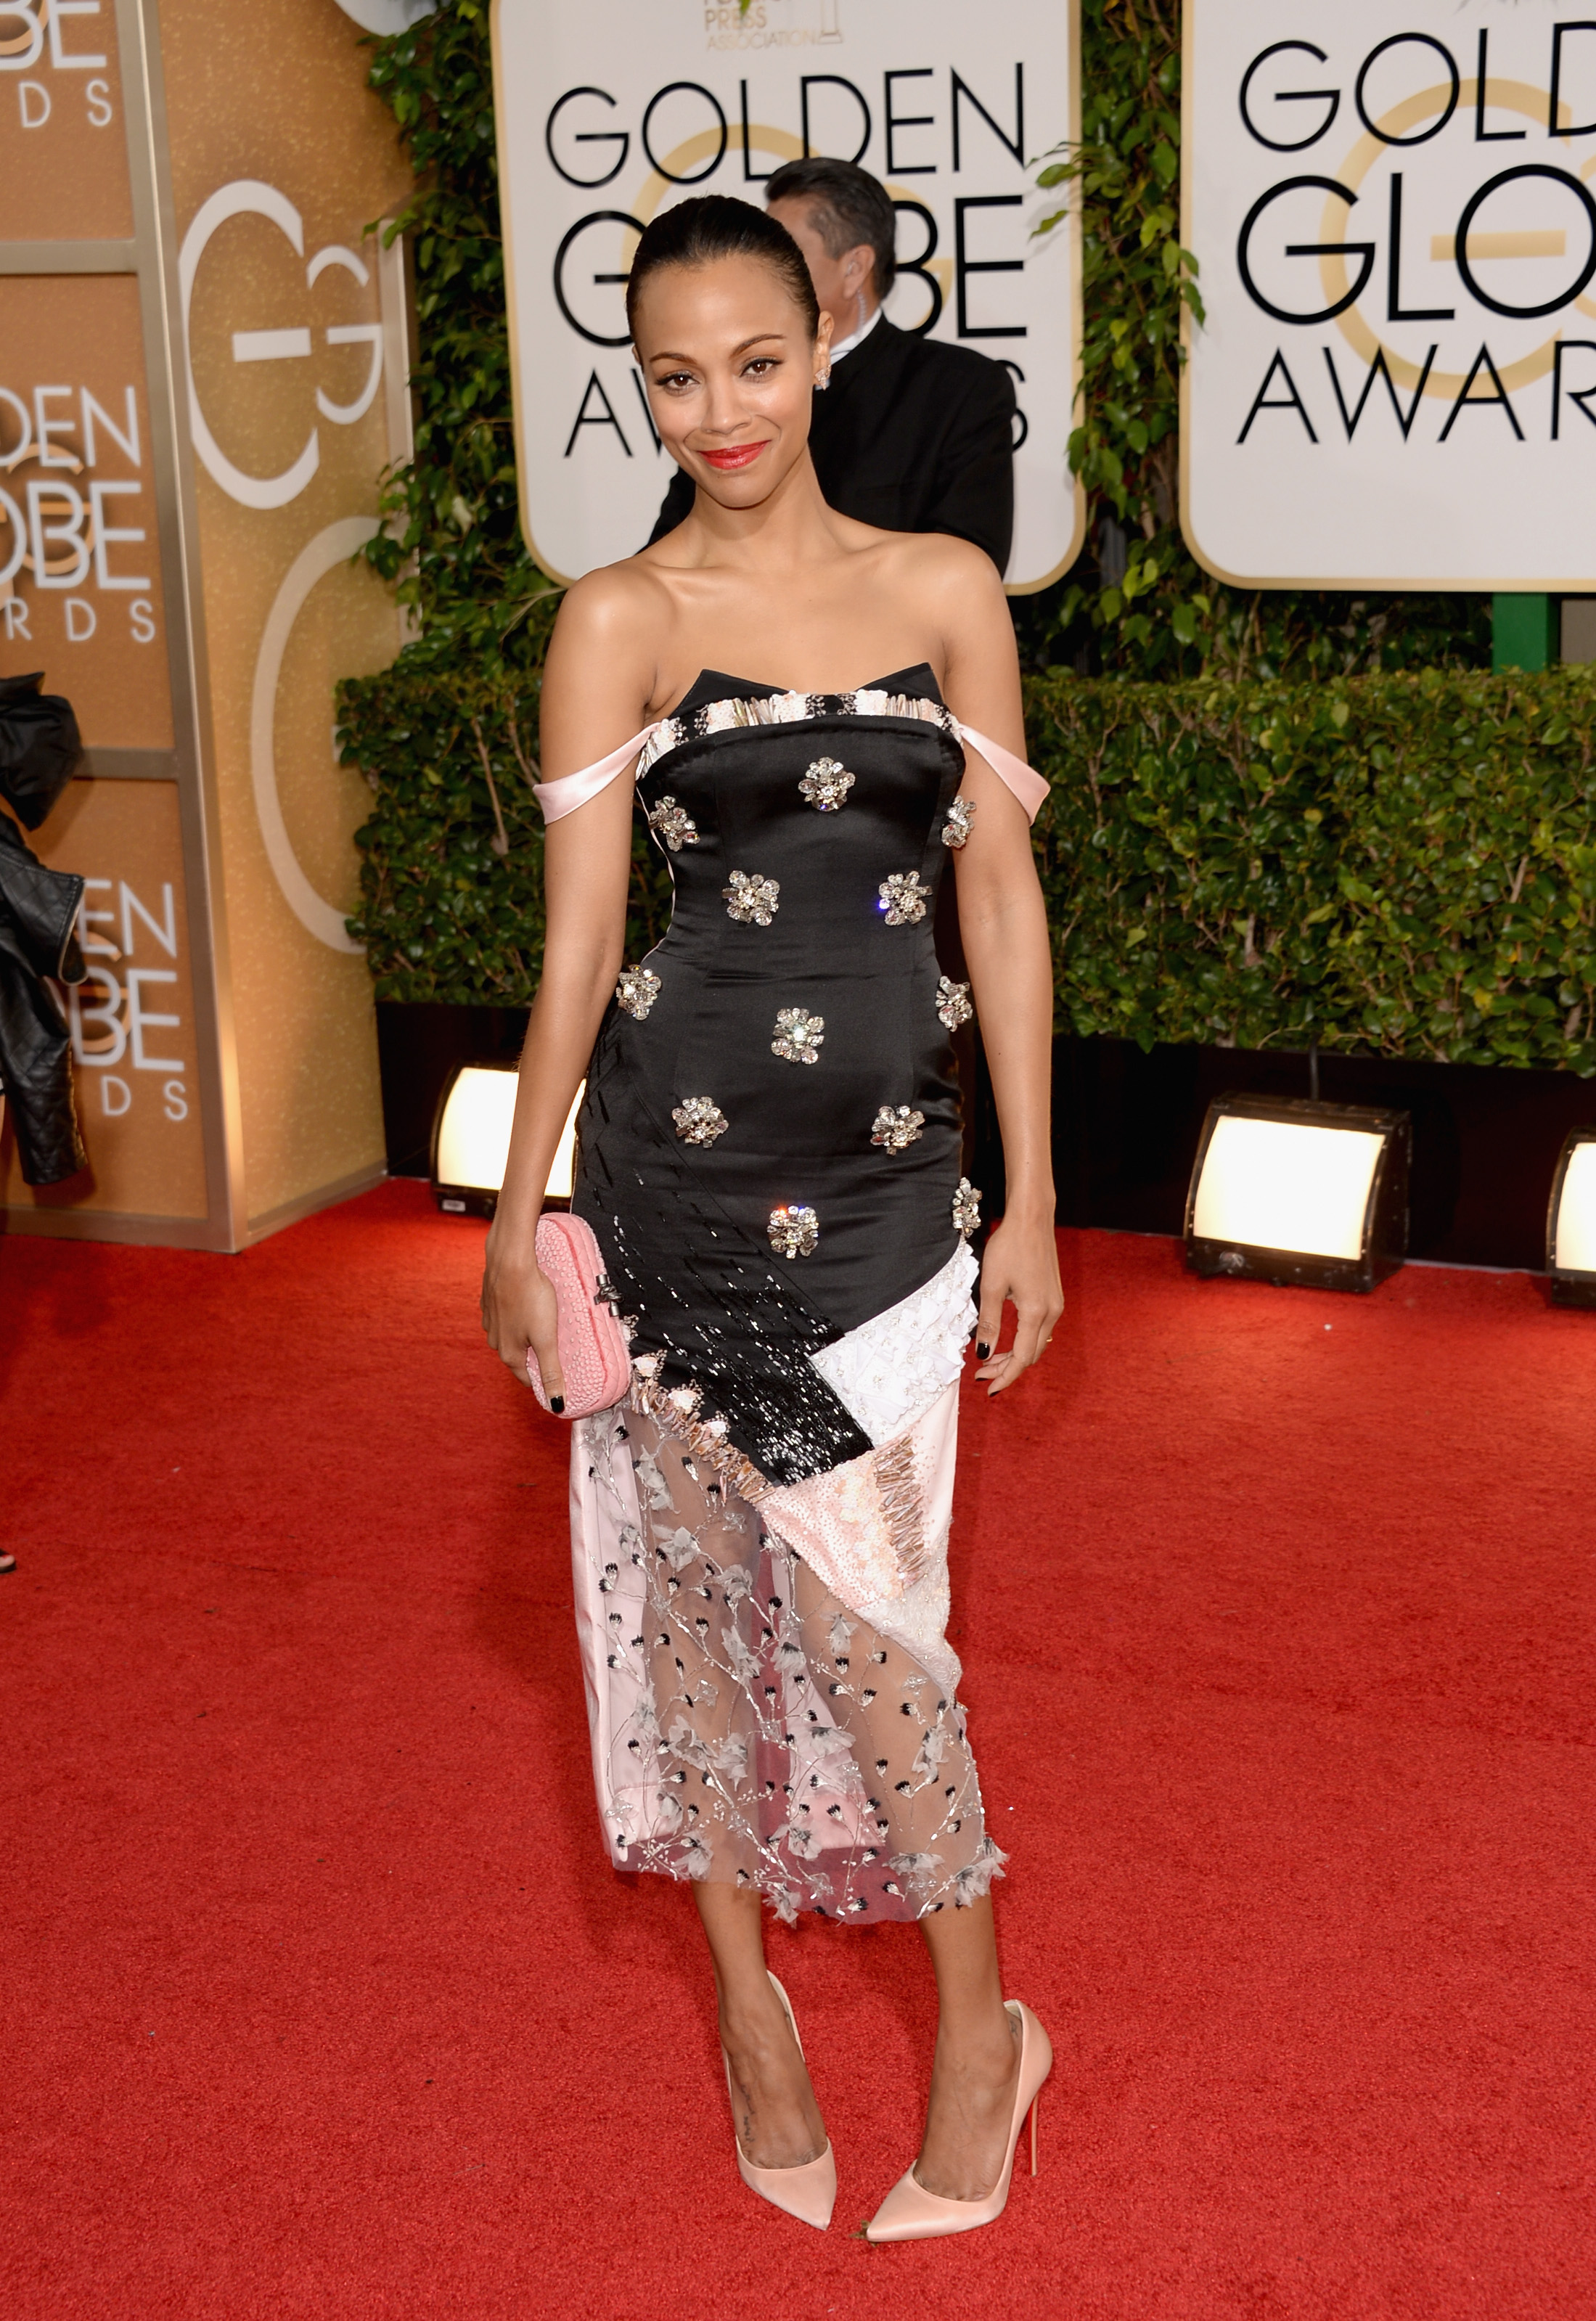 Zoe Saldana To Watch Golden Globes From Home With Twins ...